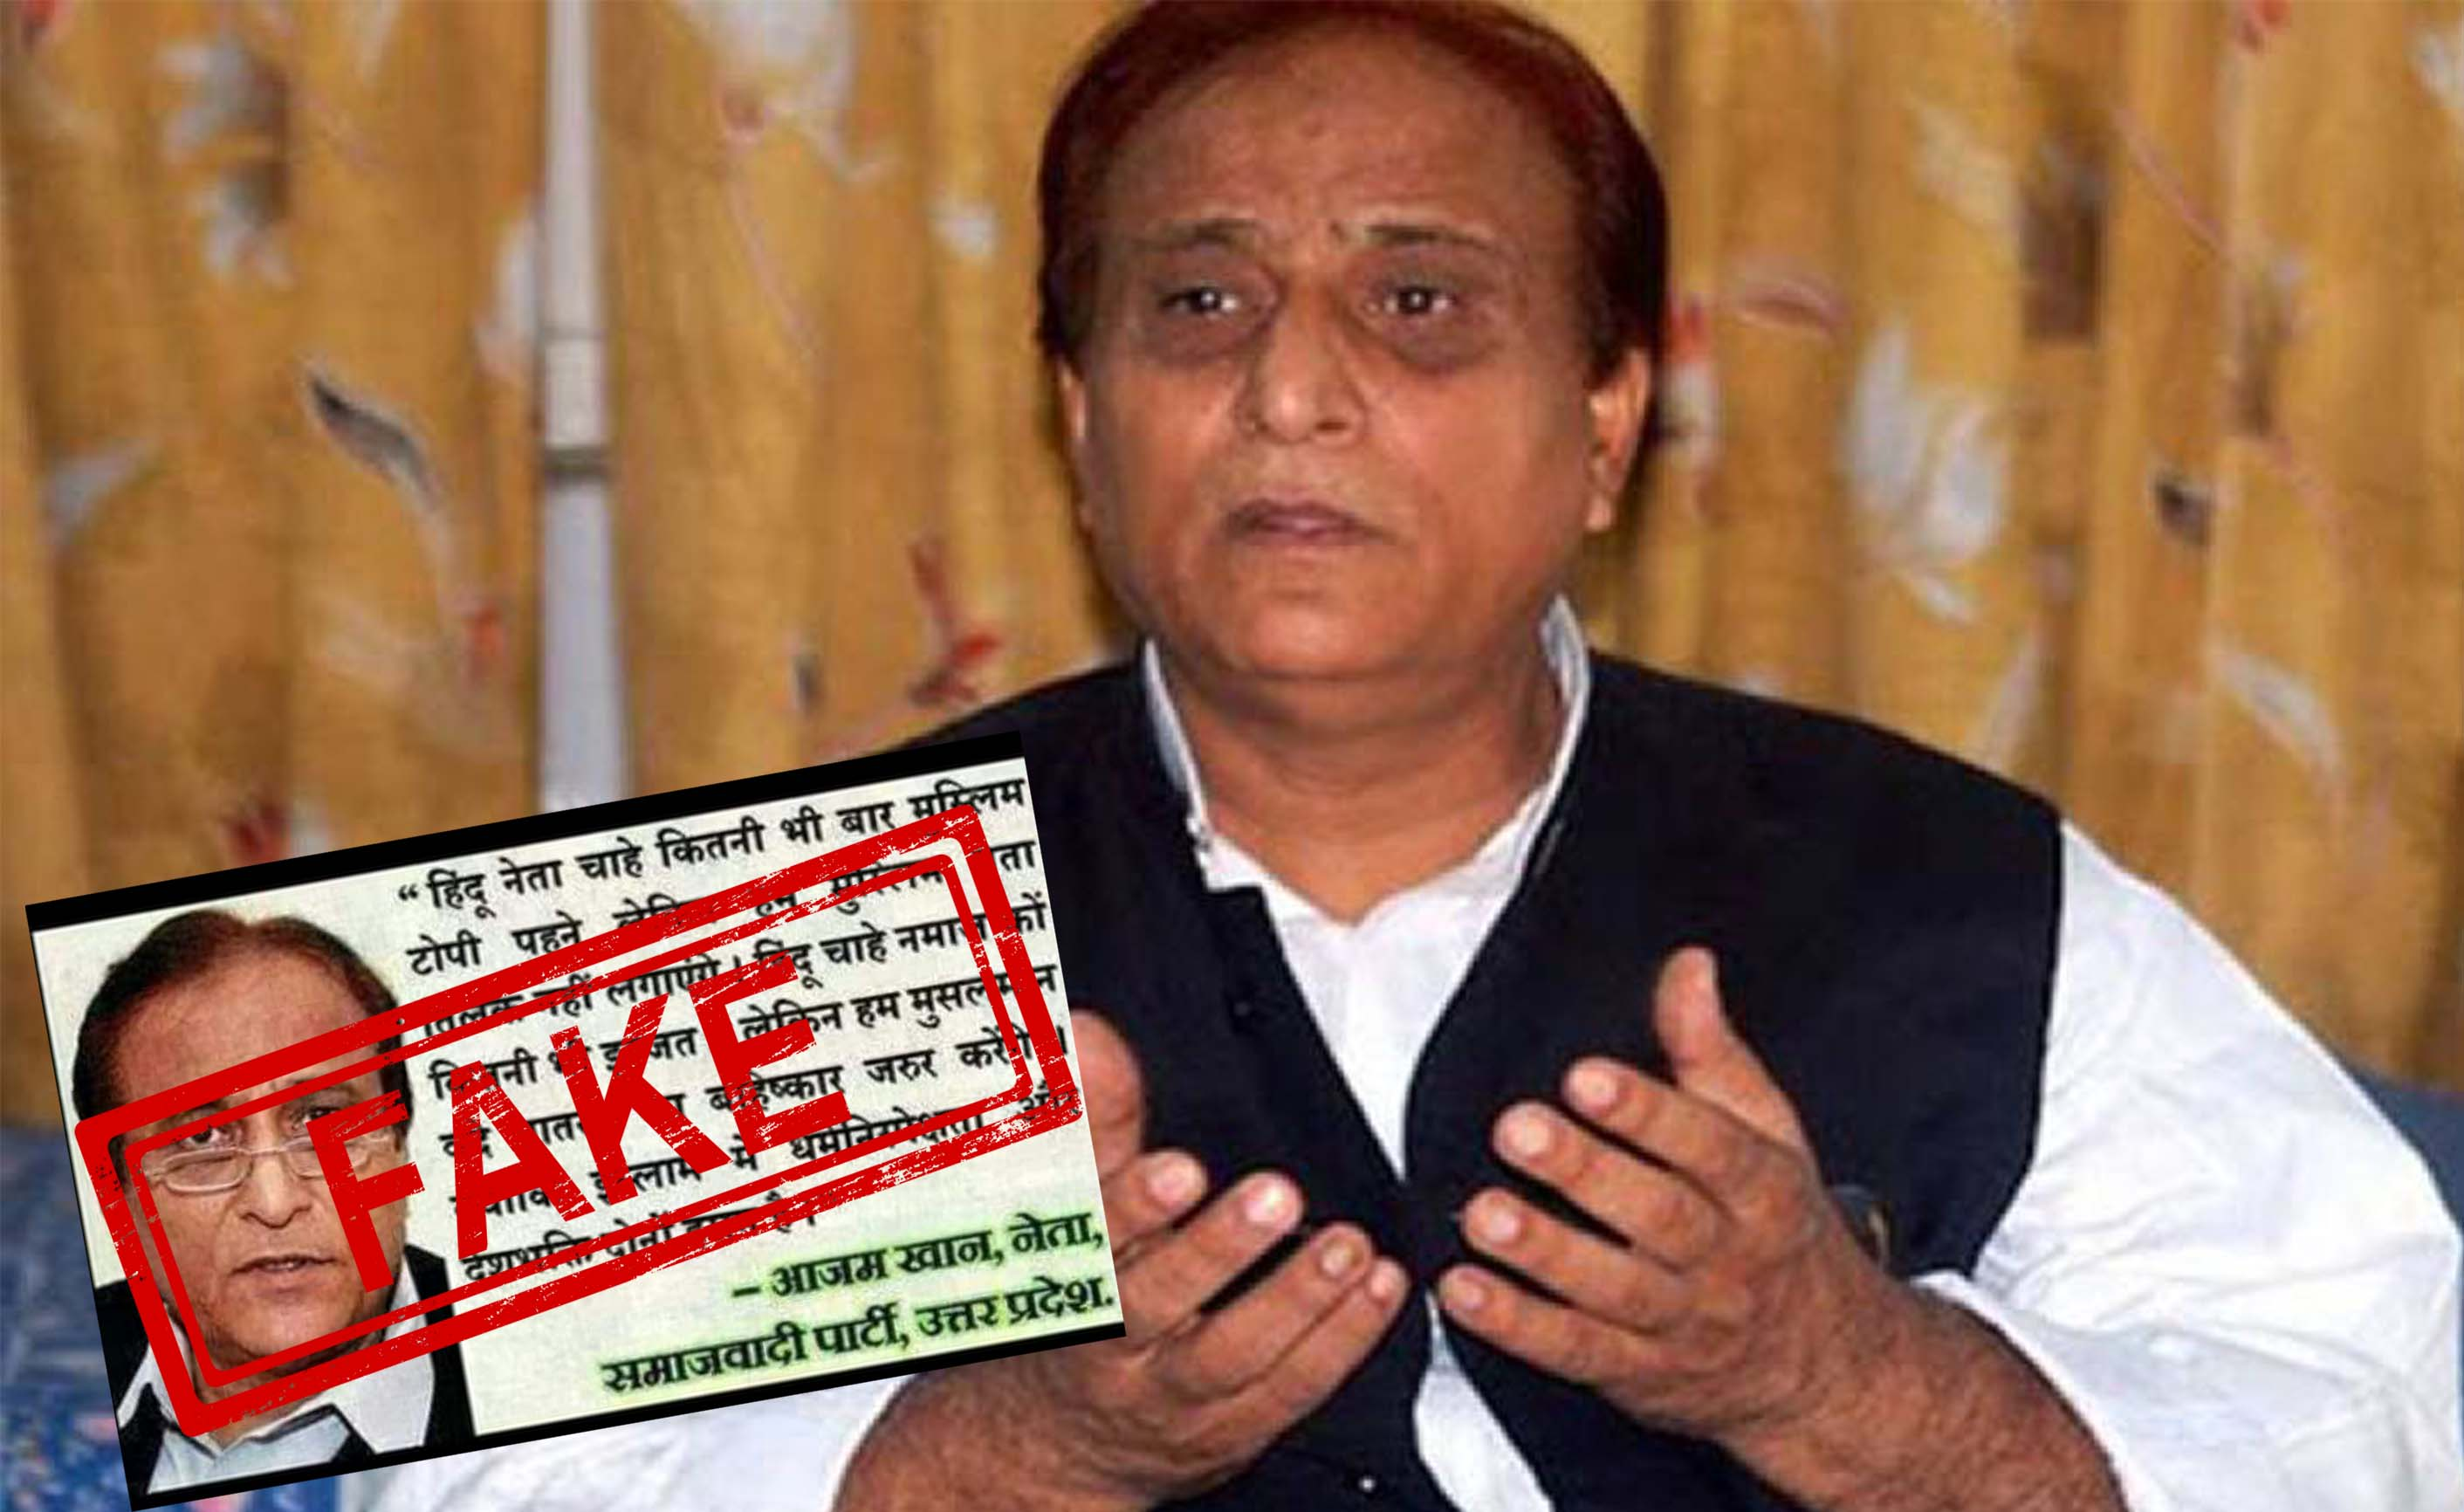 Azam Khan, Hindu, Muslim, Statement, Uttar Pradesh, Samajwadi Party, NMFC, NewsMobile, Mobile, News, India, Fact Check, Fact Checker, Fake, news